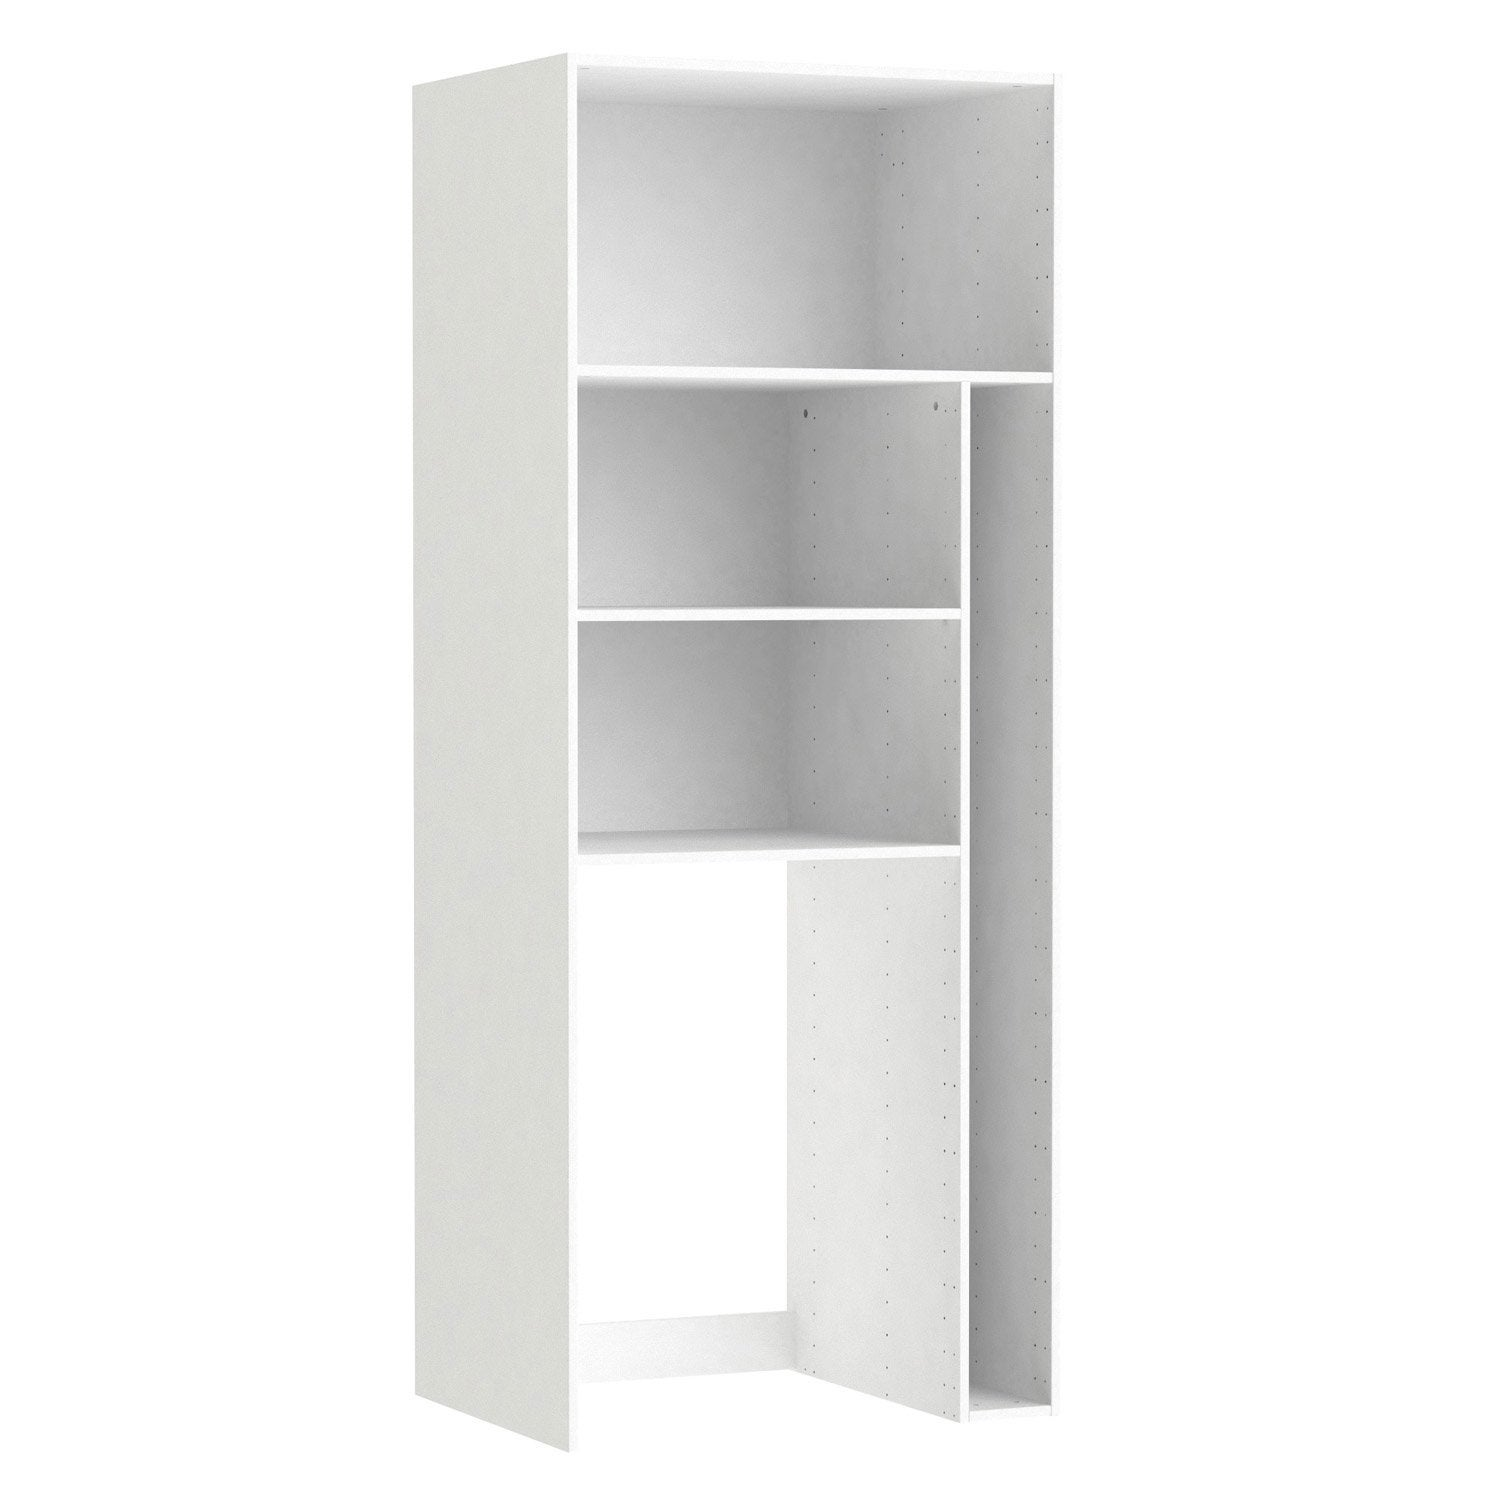 Caisson buanderie SPACEO Home 200 x 80 x 60 cm, blanc | Leroy Merlin